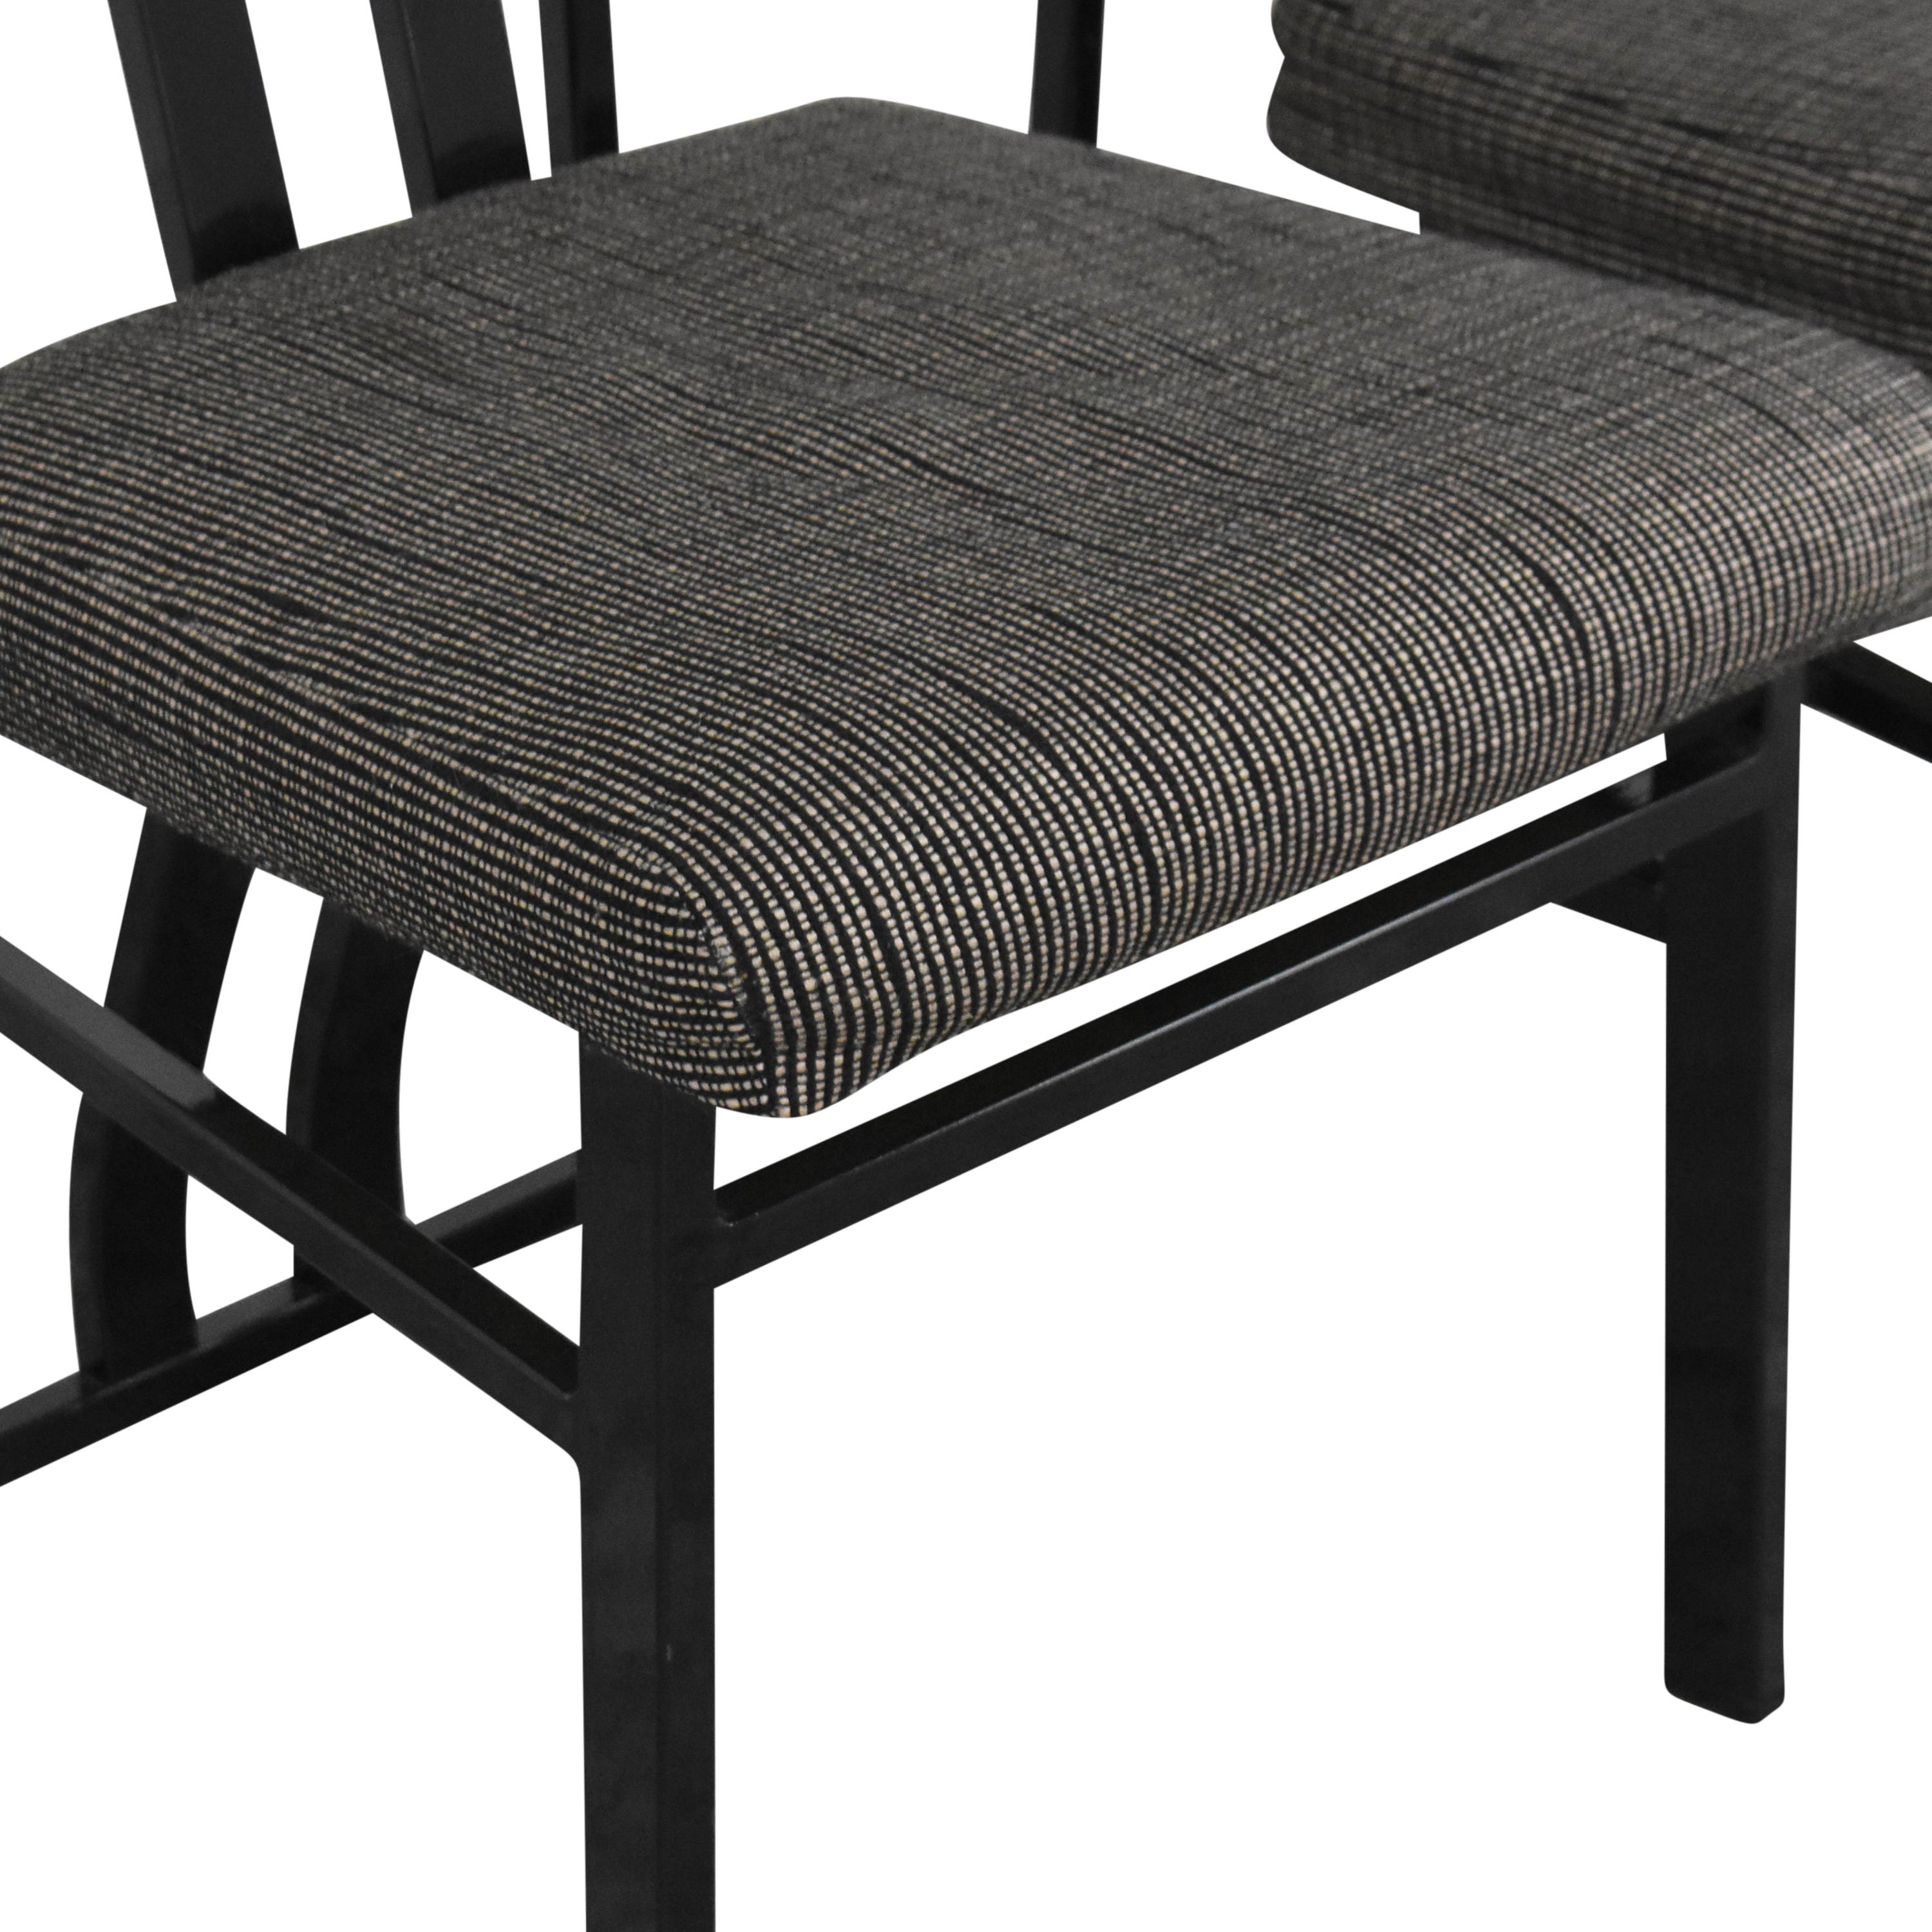 Cal Style Furniture Manufacturing Company Cal-Style Mfg Co Modern High Back Dining Chairs Chairs